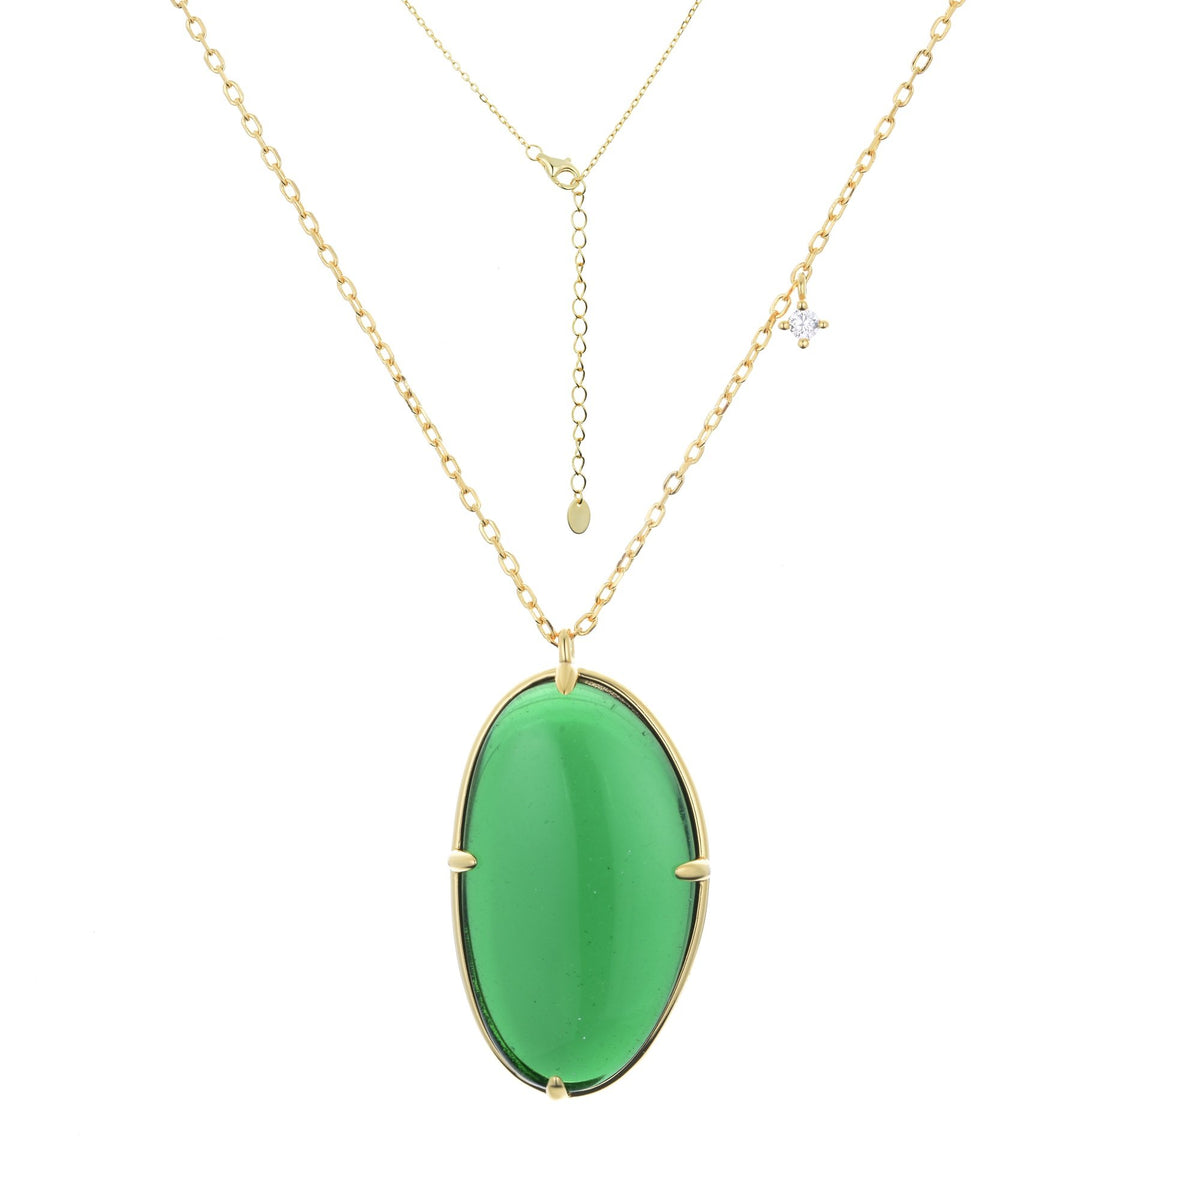 Ferentina | Doughnut Necklace | 925 Silver | White & Green CZ | 18K Gold Plated